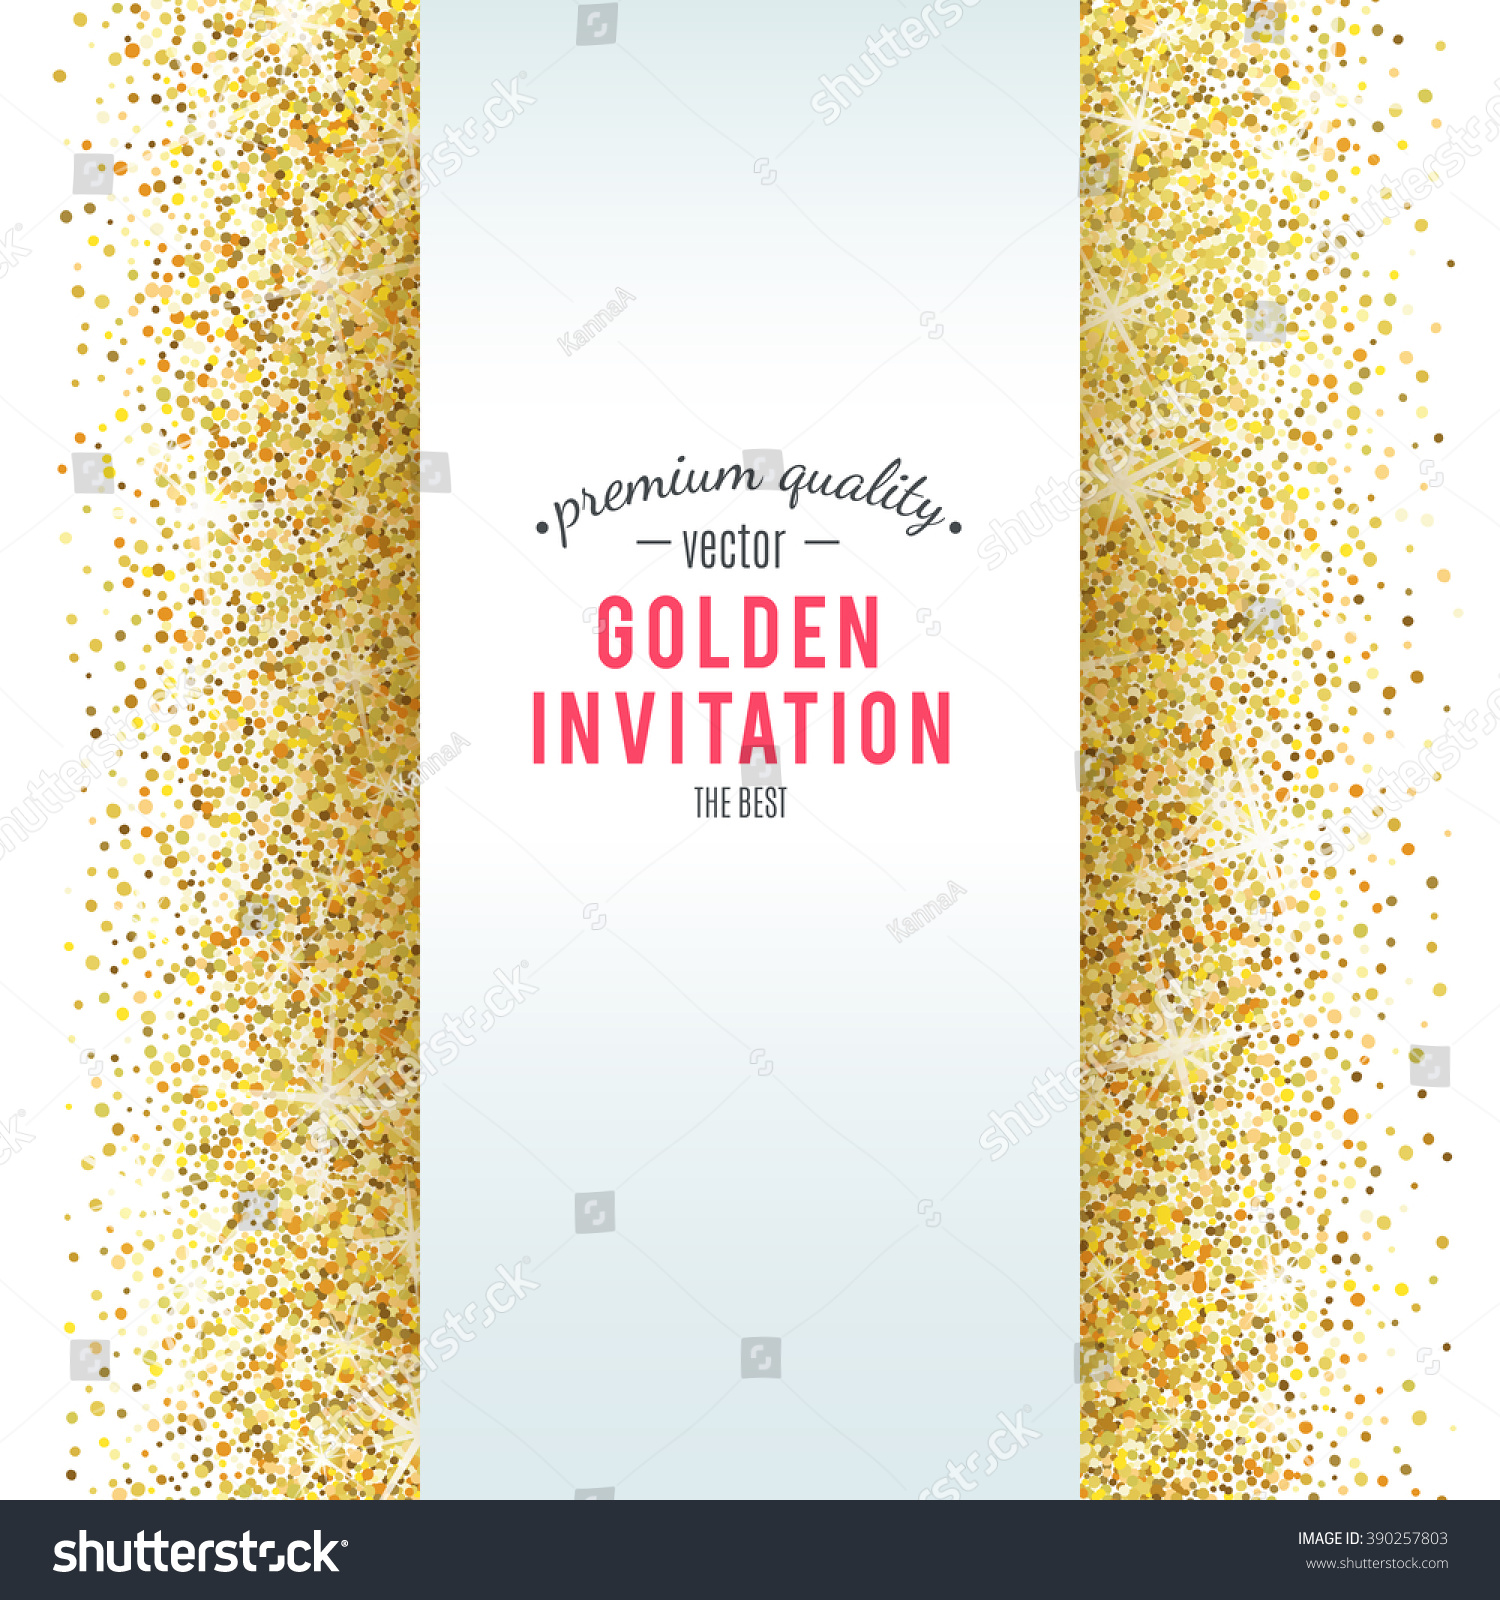 Gold glitter bright vector transparent background golden sparkles - Gold Glitter Texture Isolated On White Background Vector Illustration For Golden Shimmer Background Sparkle